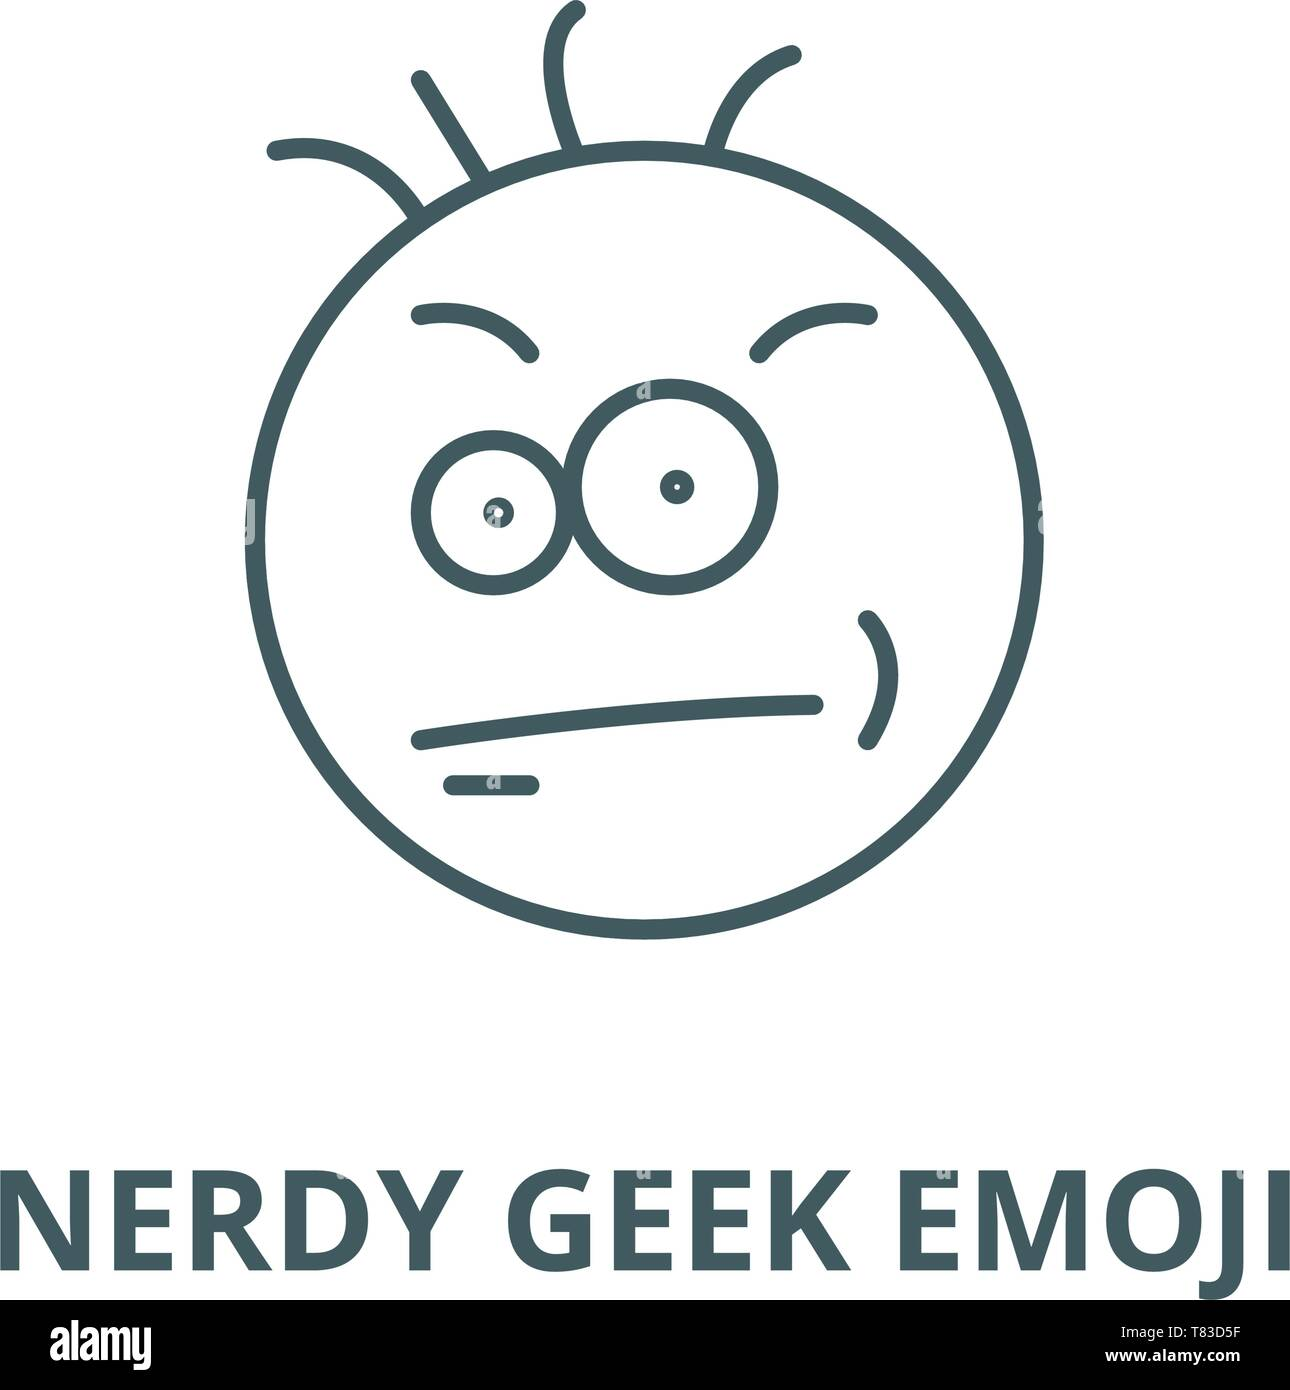 Nerdy geek emoji vector line icon, linear concept, outline sign, symbol - Stock Image